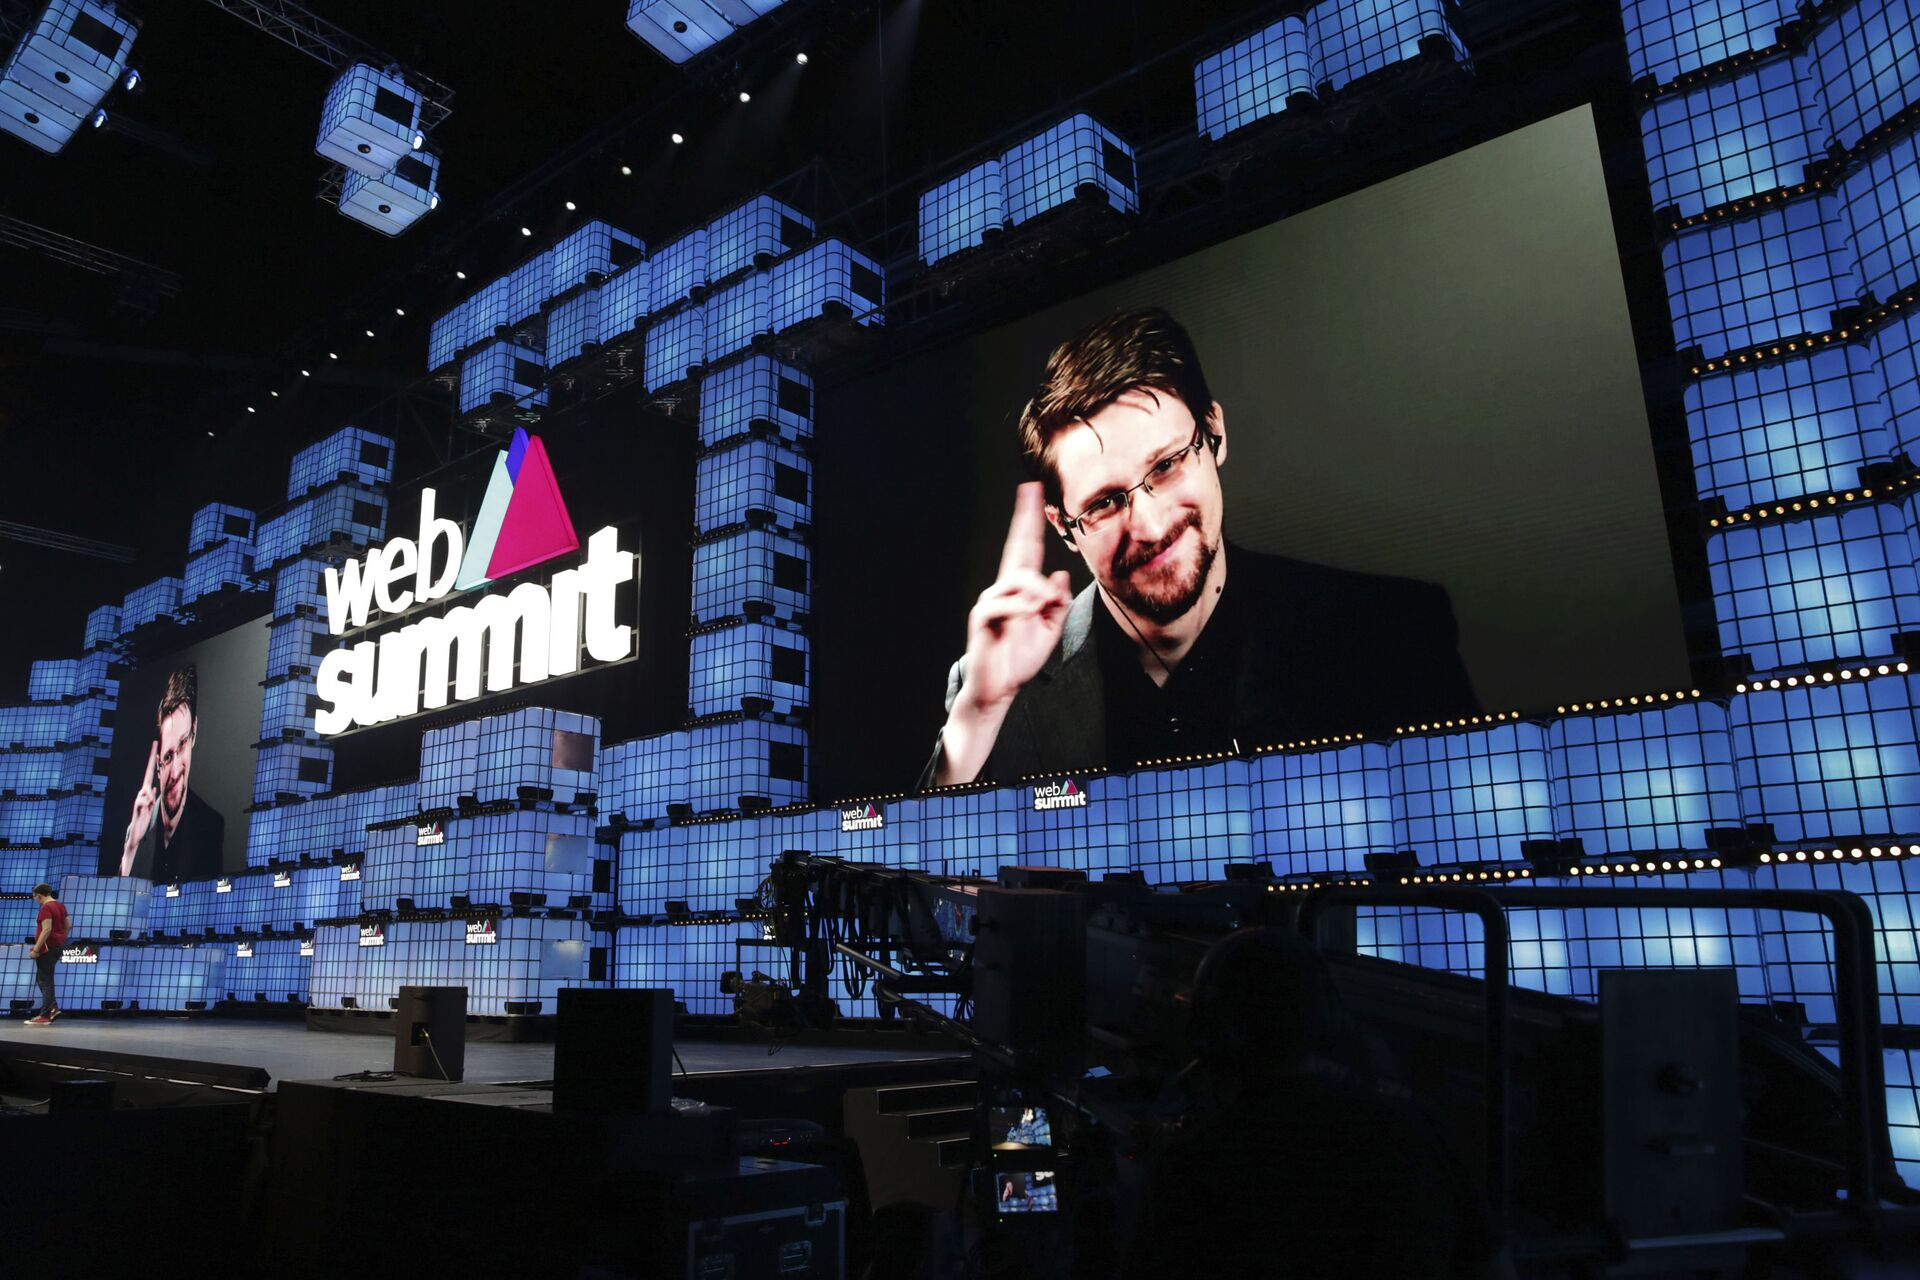 Former U.S. National Security Agency contractor Edward Snowden addresses attendees through video link at the Web Summit technology conference in Lisbon, Monday, Nov. 4, 2019. Snowden has been living in Russia to escape U.S. prosecution after leaking classified documents detailing government surveillance programs - Sputnik International, 1920, 07.09.2021